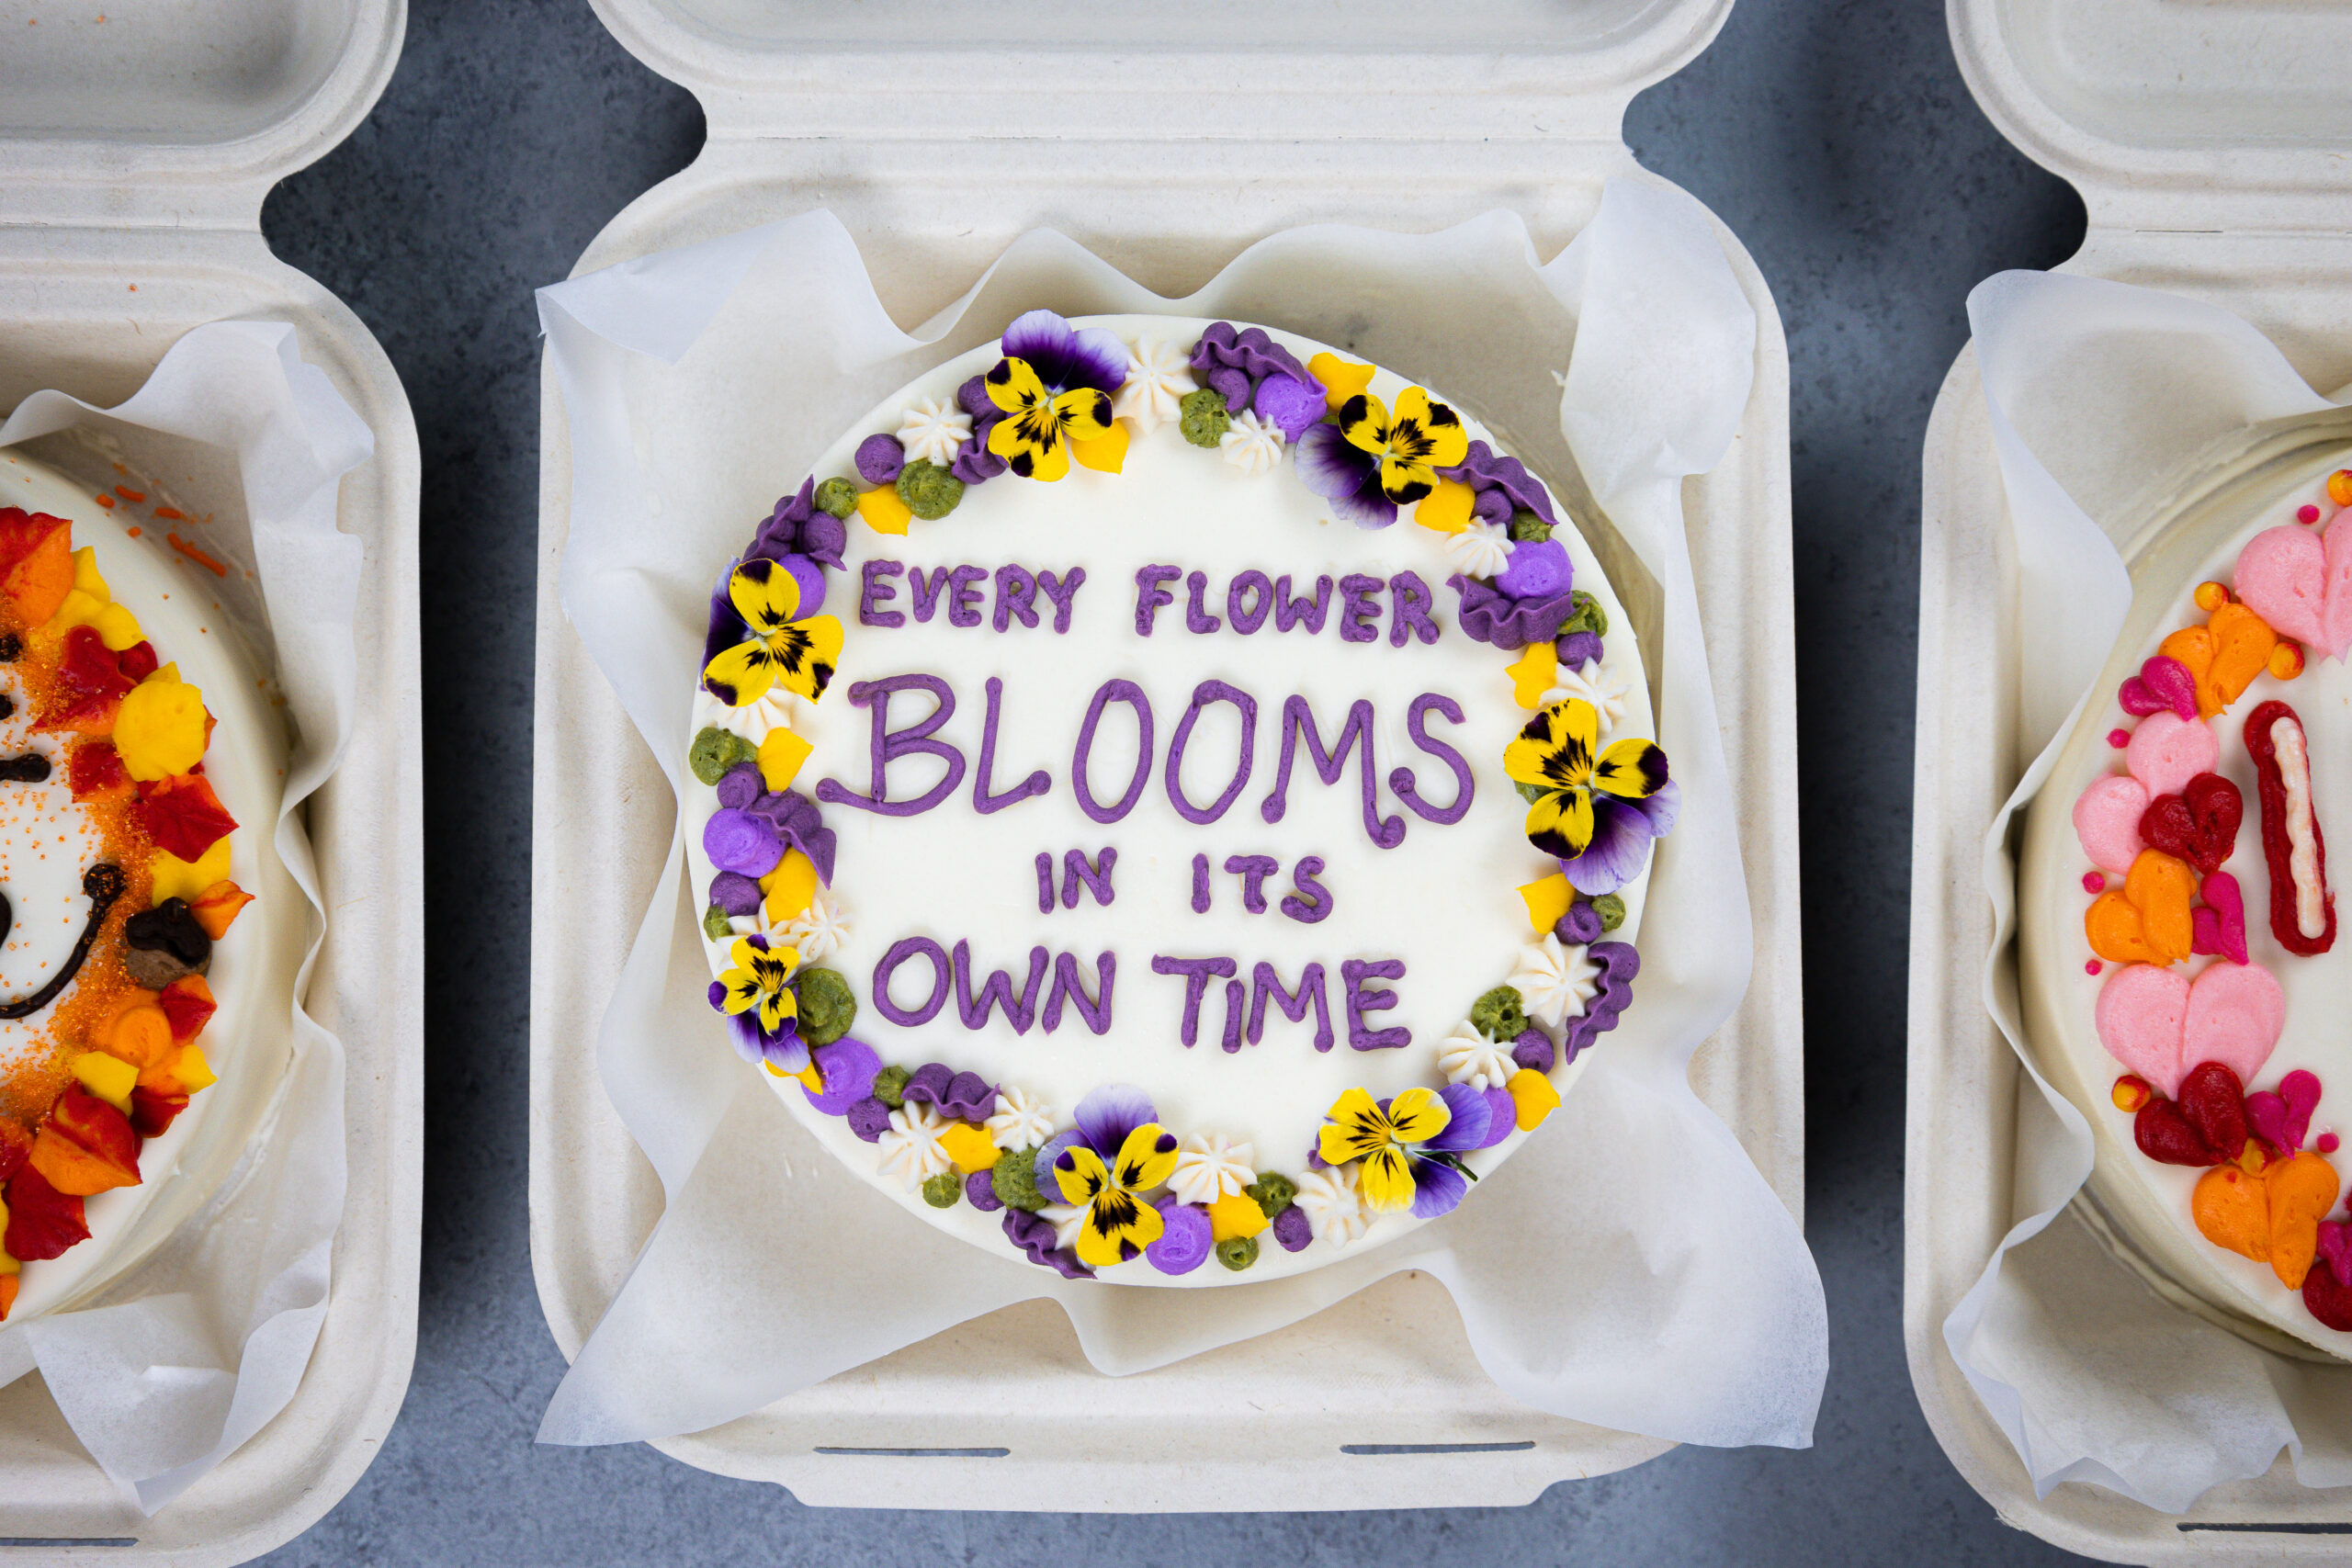 image of an adorable bento cake or lunch box cake decorated with a cute saying and edible flowers